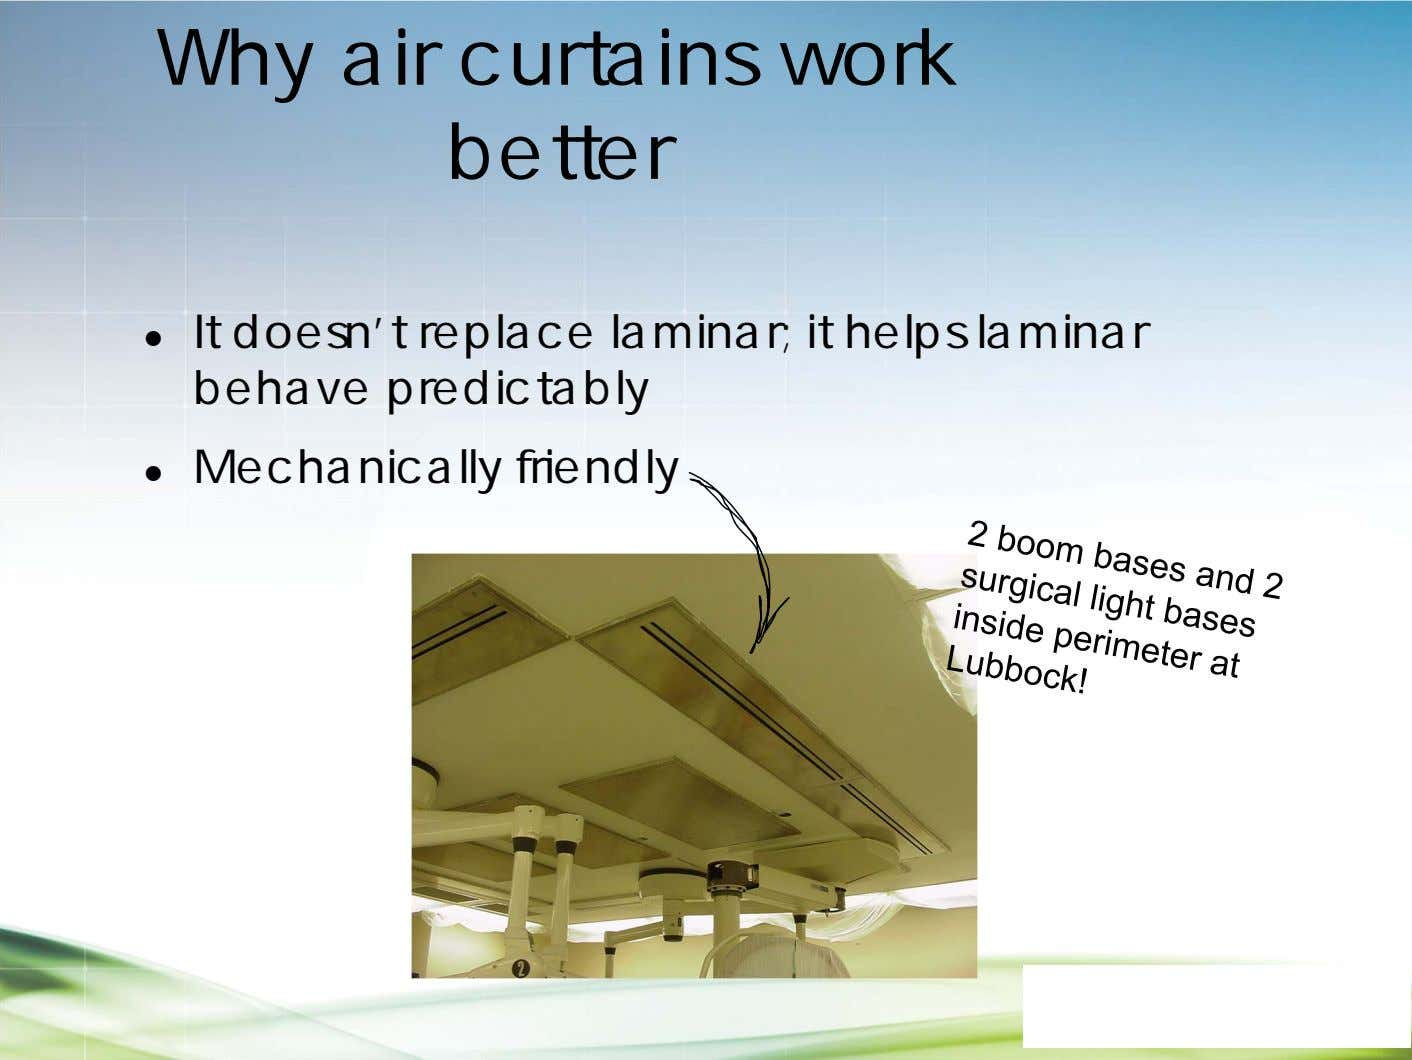 Why air curtains work better  It doesn't replace laminar; it helps laminar behave predictably